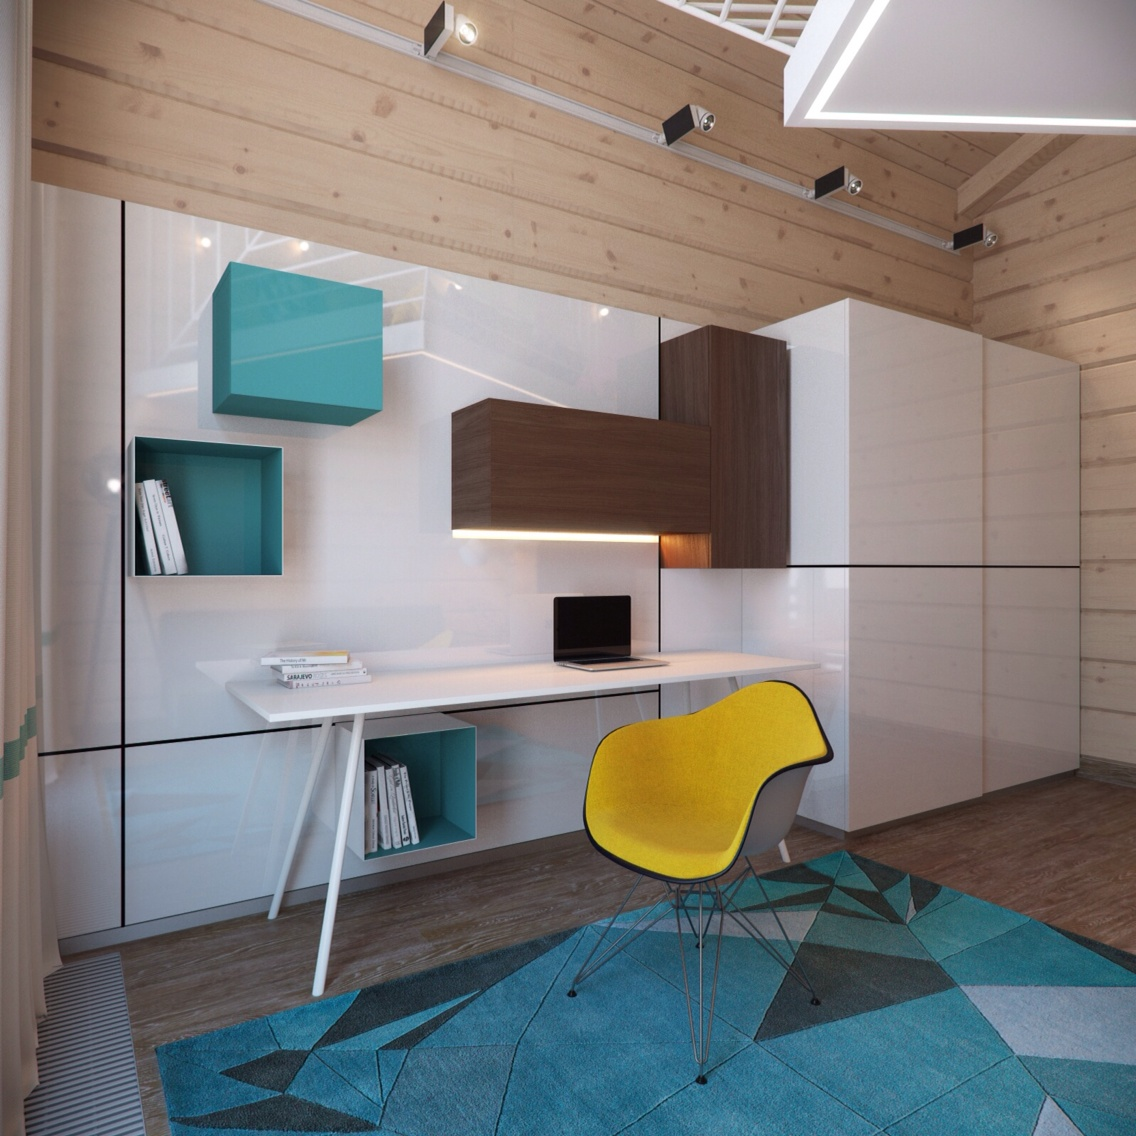 Yellow Eames Chair - 3 creative top floor rooms with wood accents